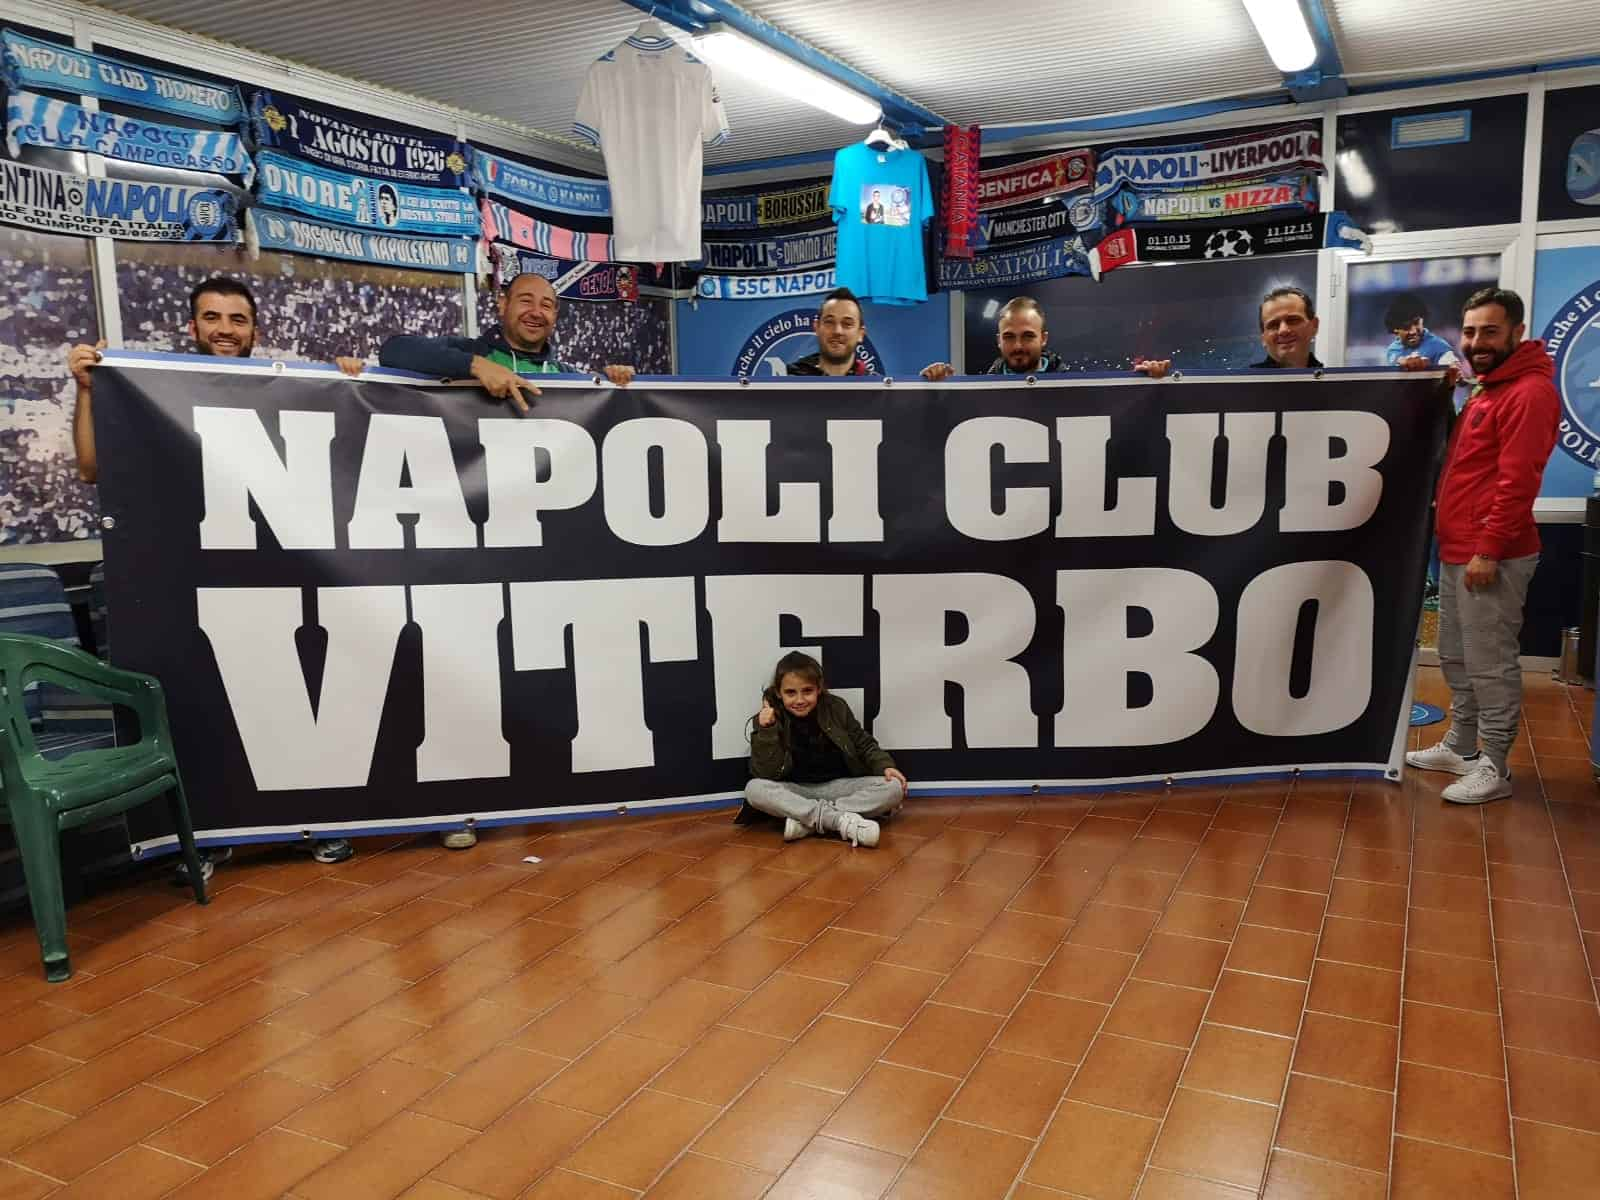 Napoli Club Viterbo